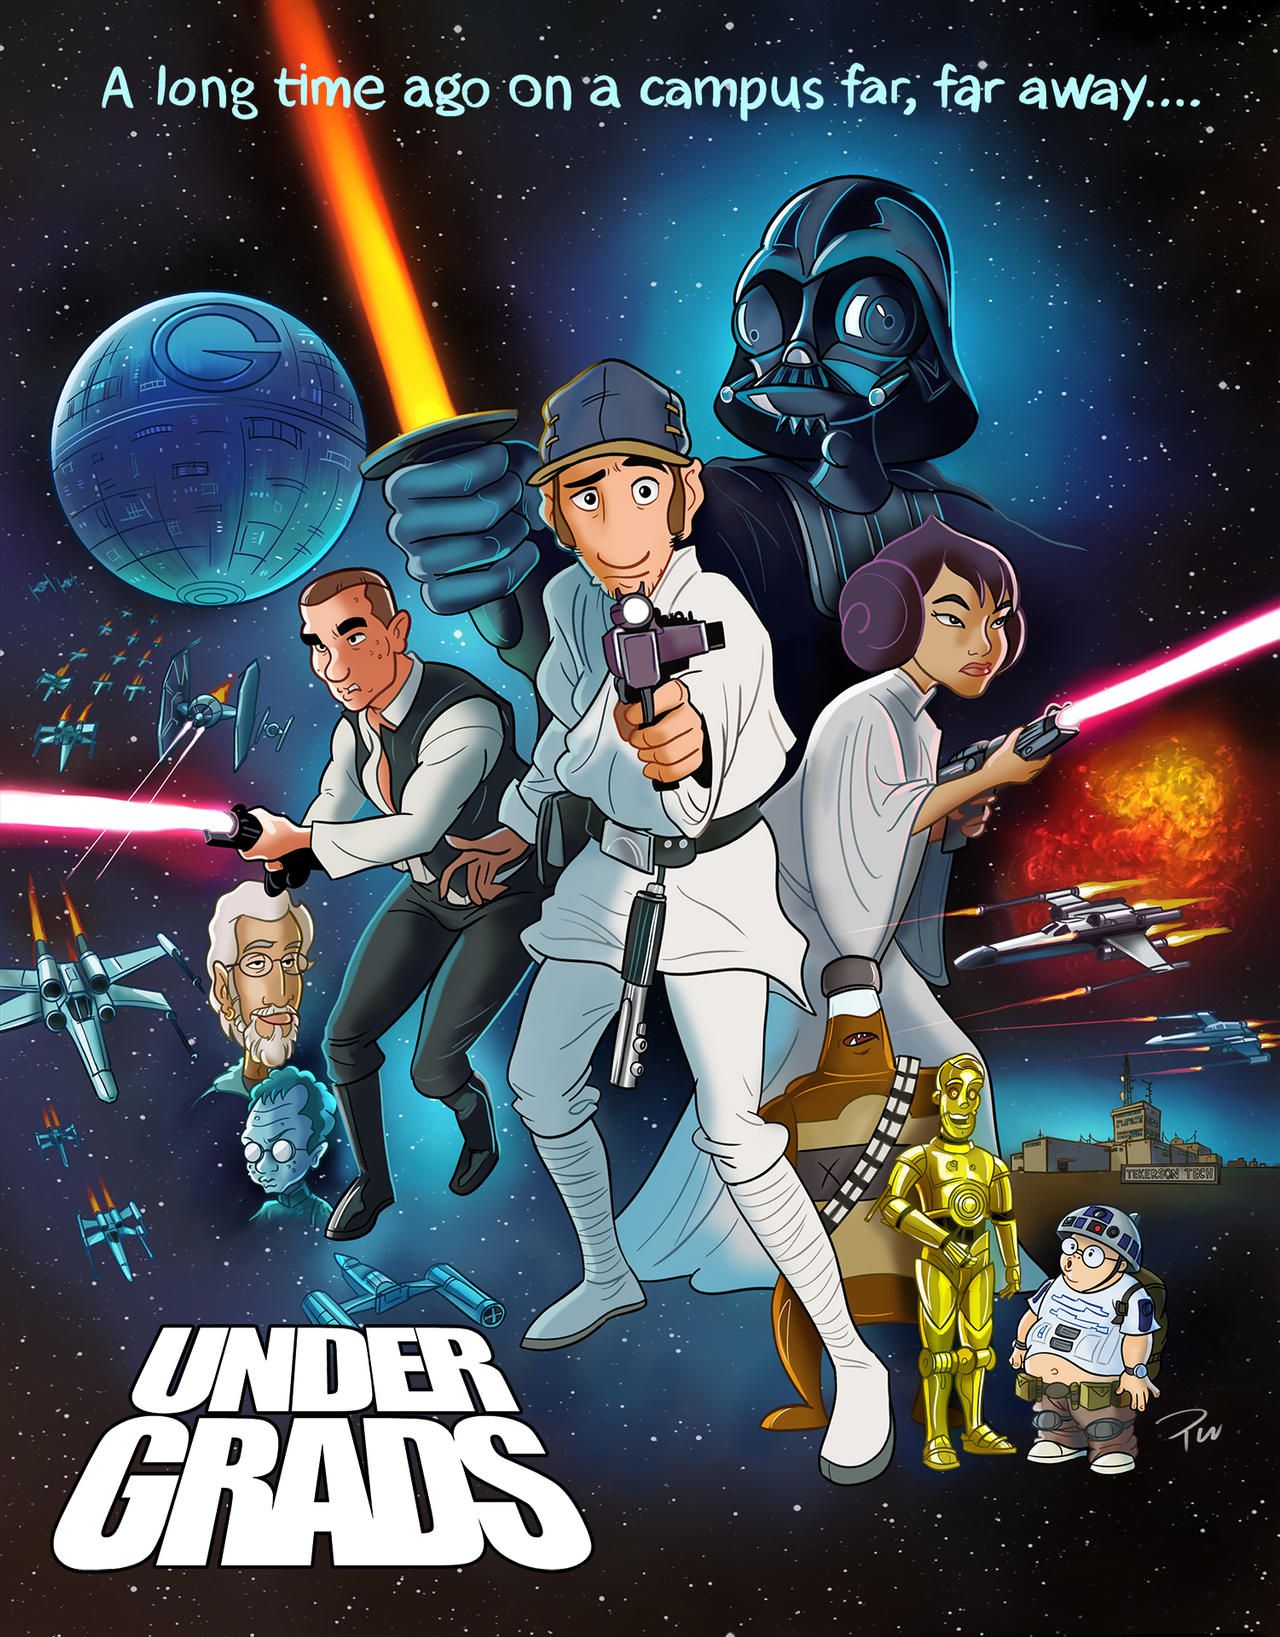 undergrads star wars a new hope poster by